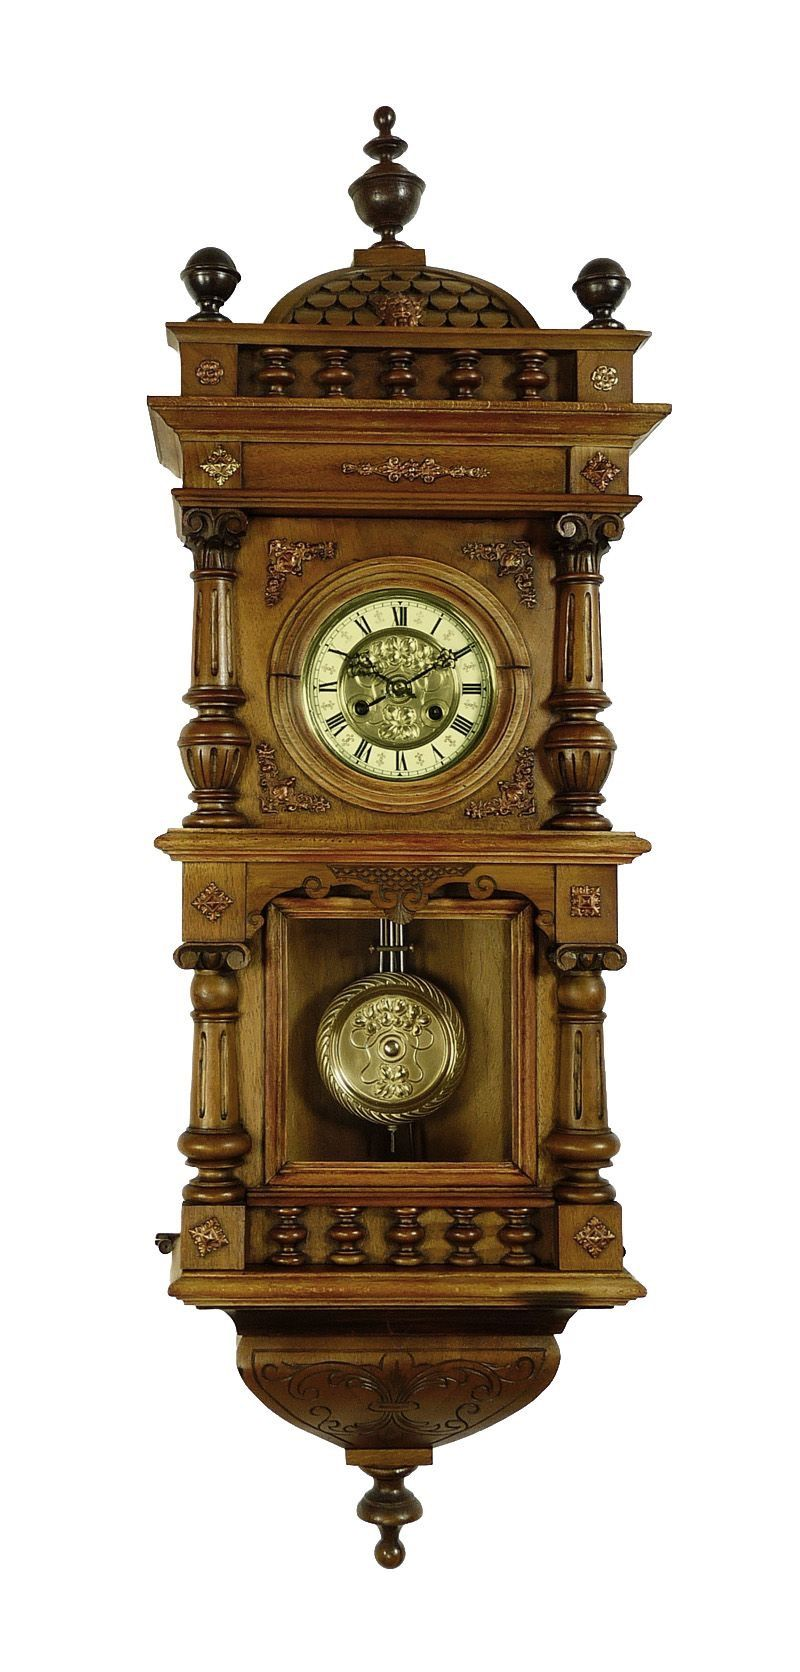 Antique German Black Forest Friedrich Mauthe wall clock at 1900